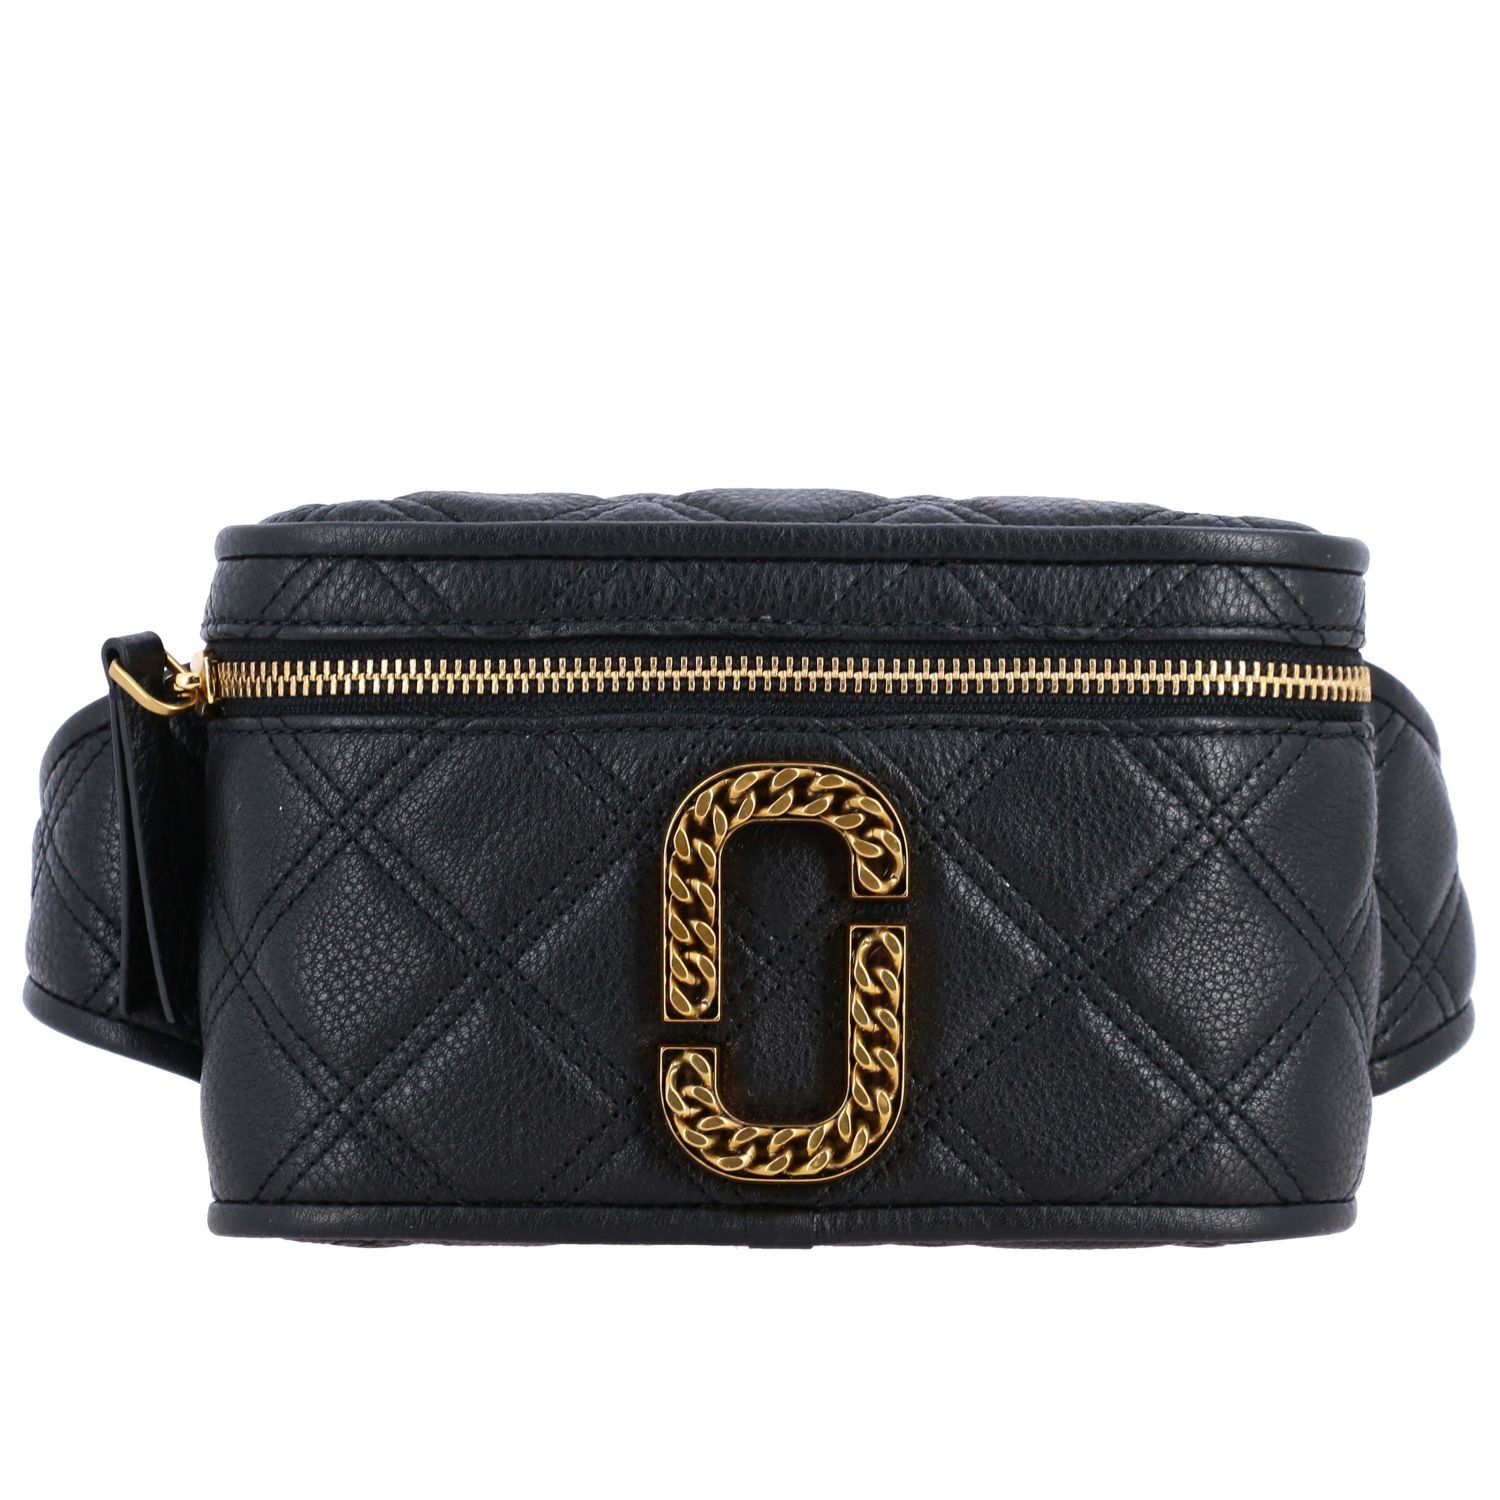 Marc Jacobs belt bag in quilted leather with paperclip black 1